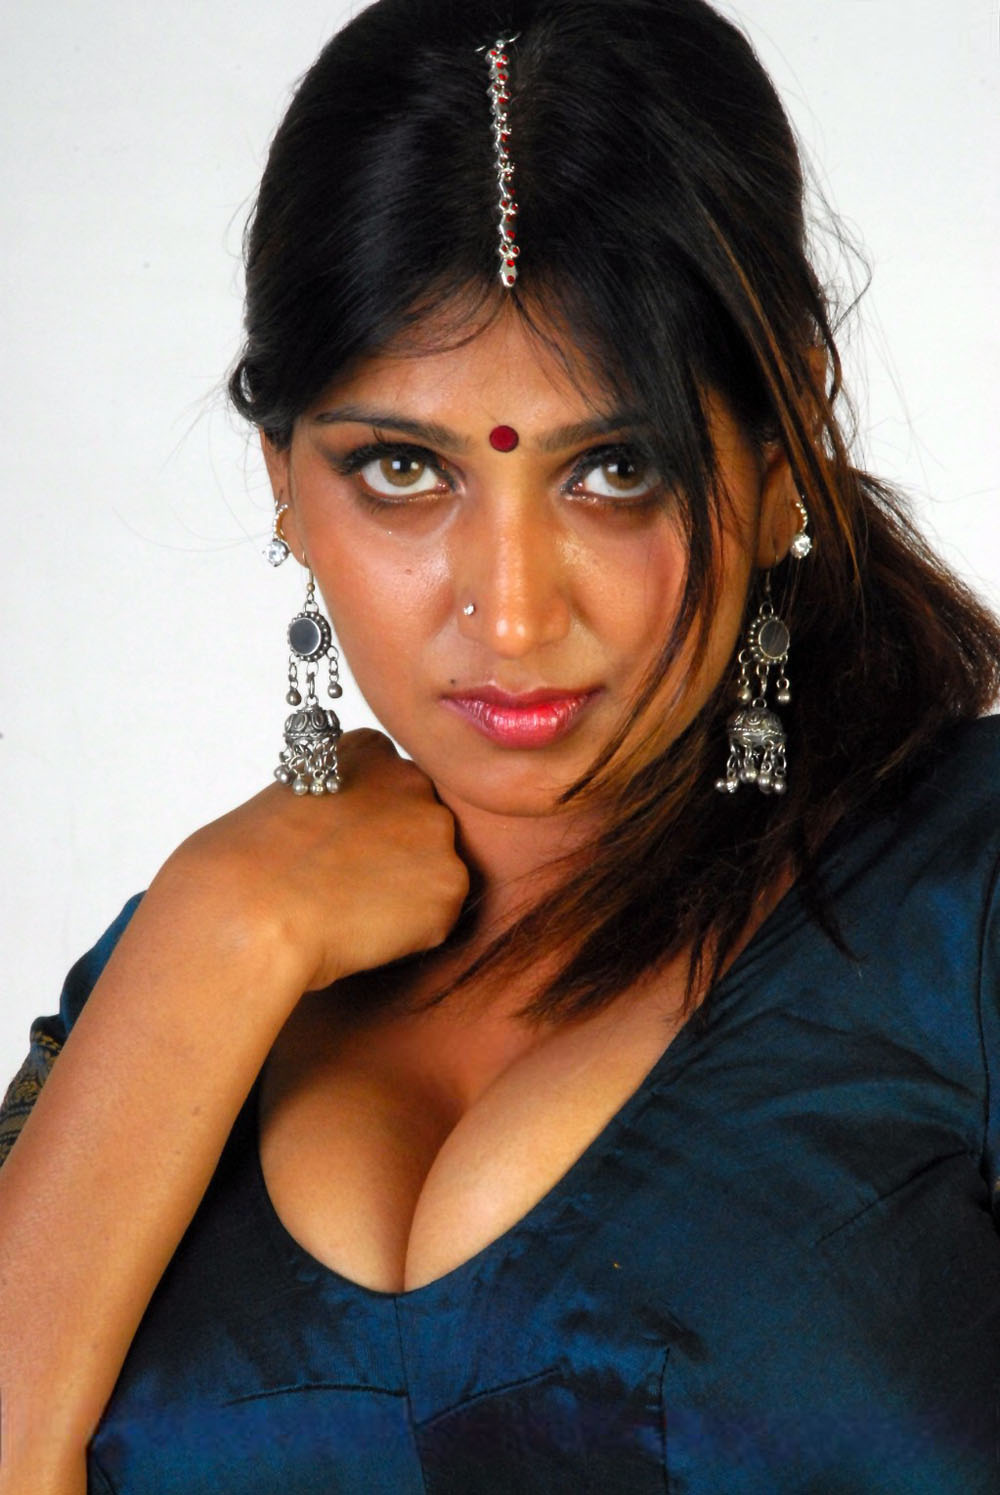 Mallu Hot Sexy Images